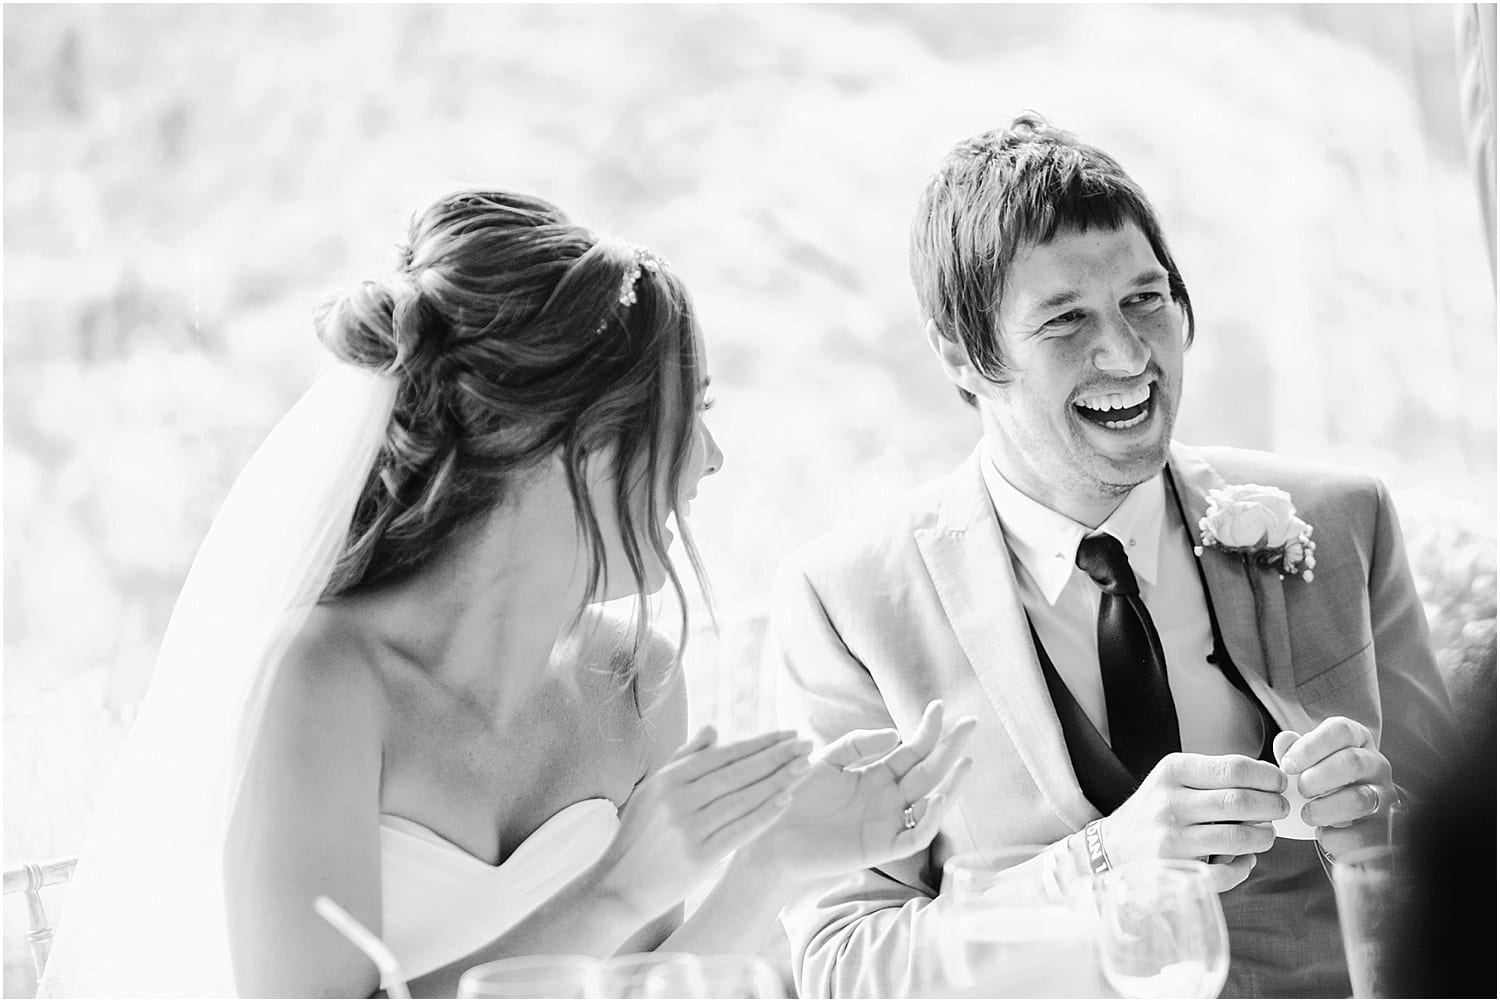 Horn of Plenty weddings by Younger Photography